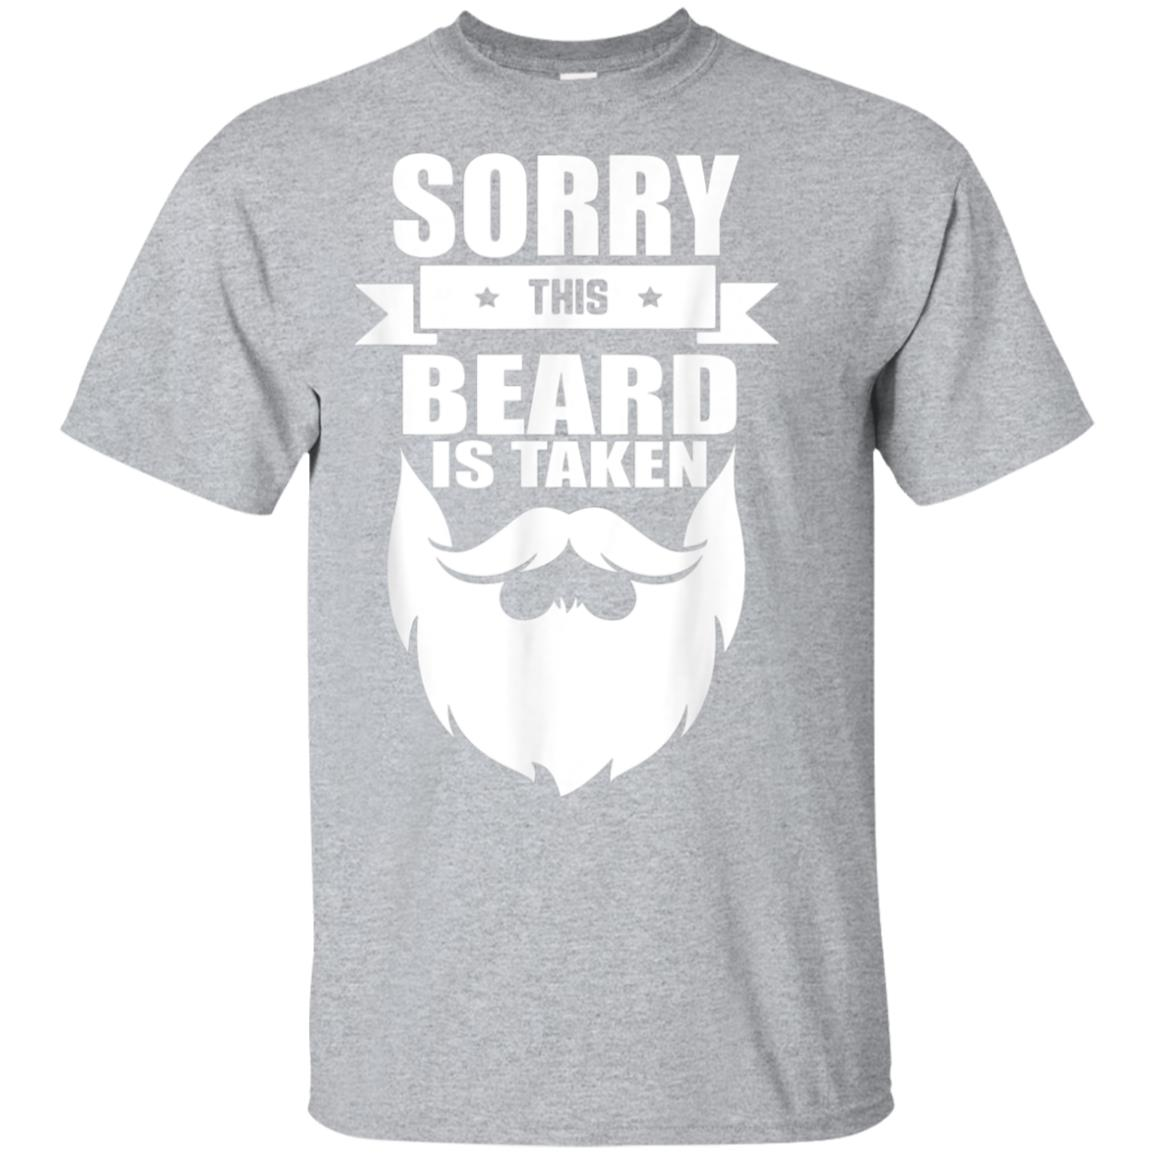 Mens Sorry this beard is taken funny distressed gift T-shirt 99promocode